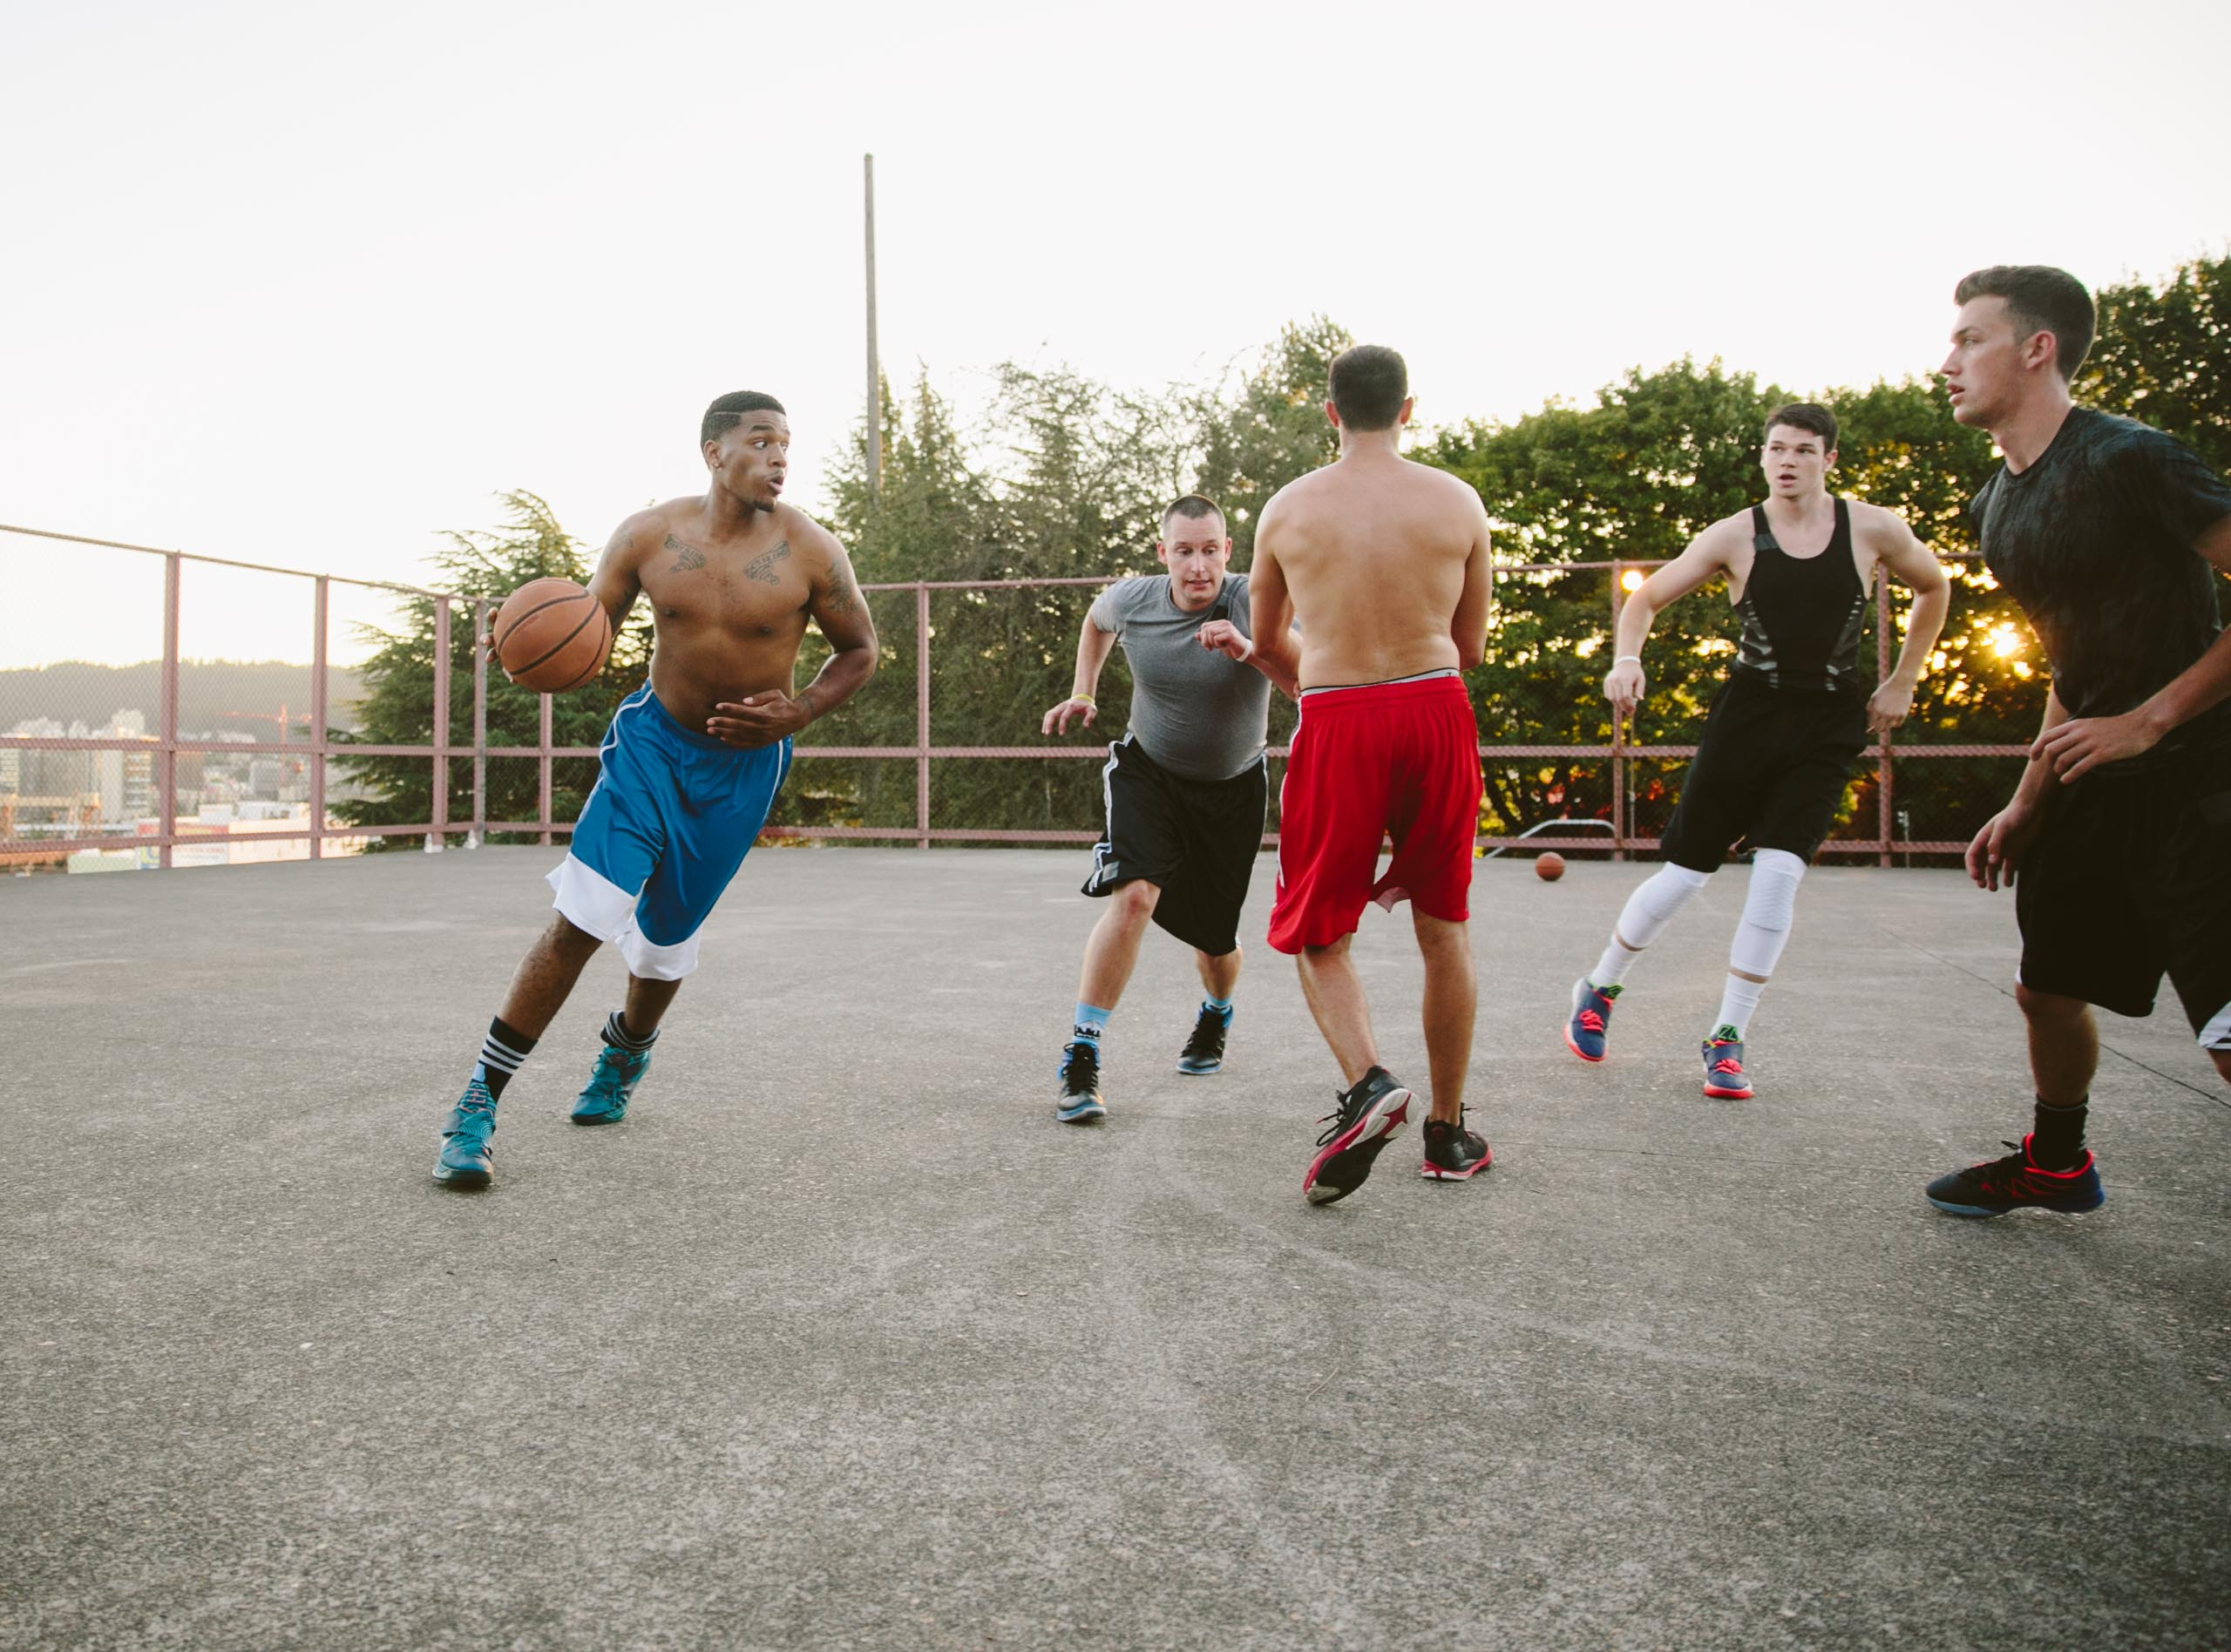 Group of young men play street basketball